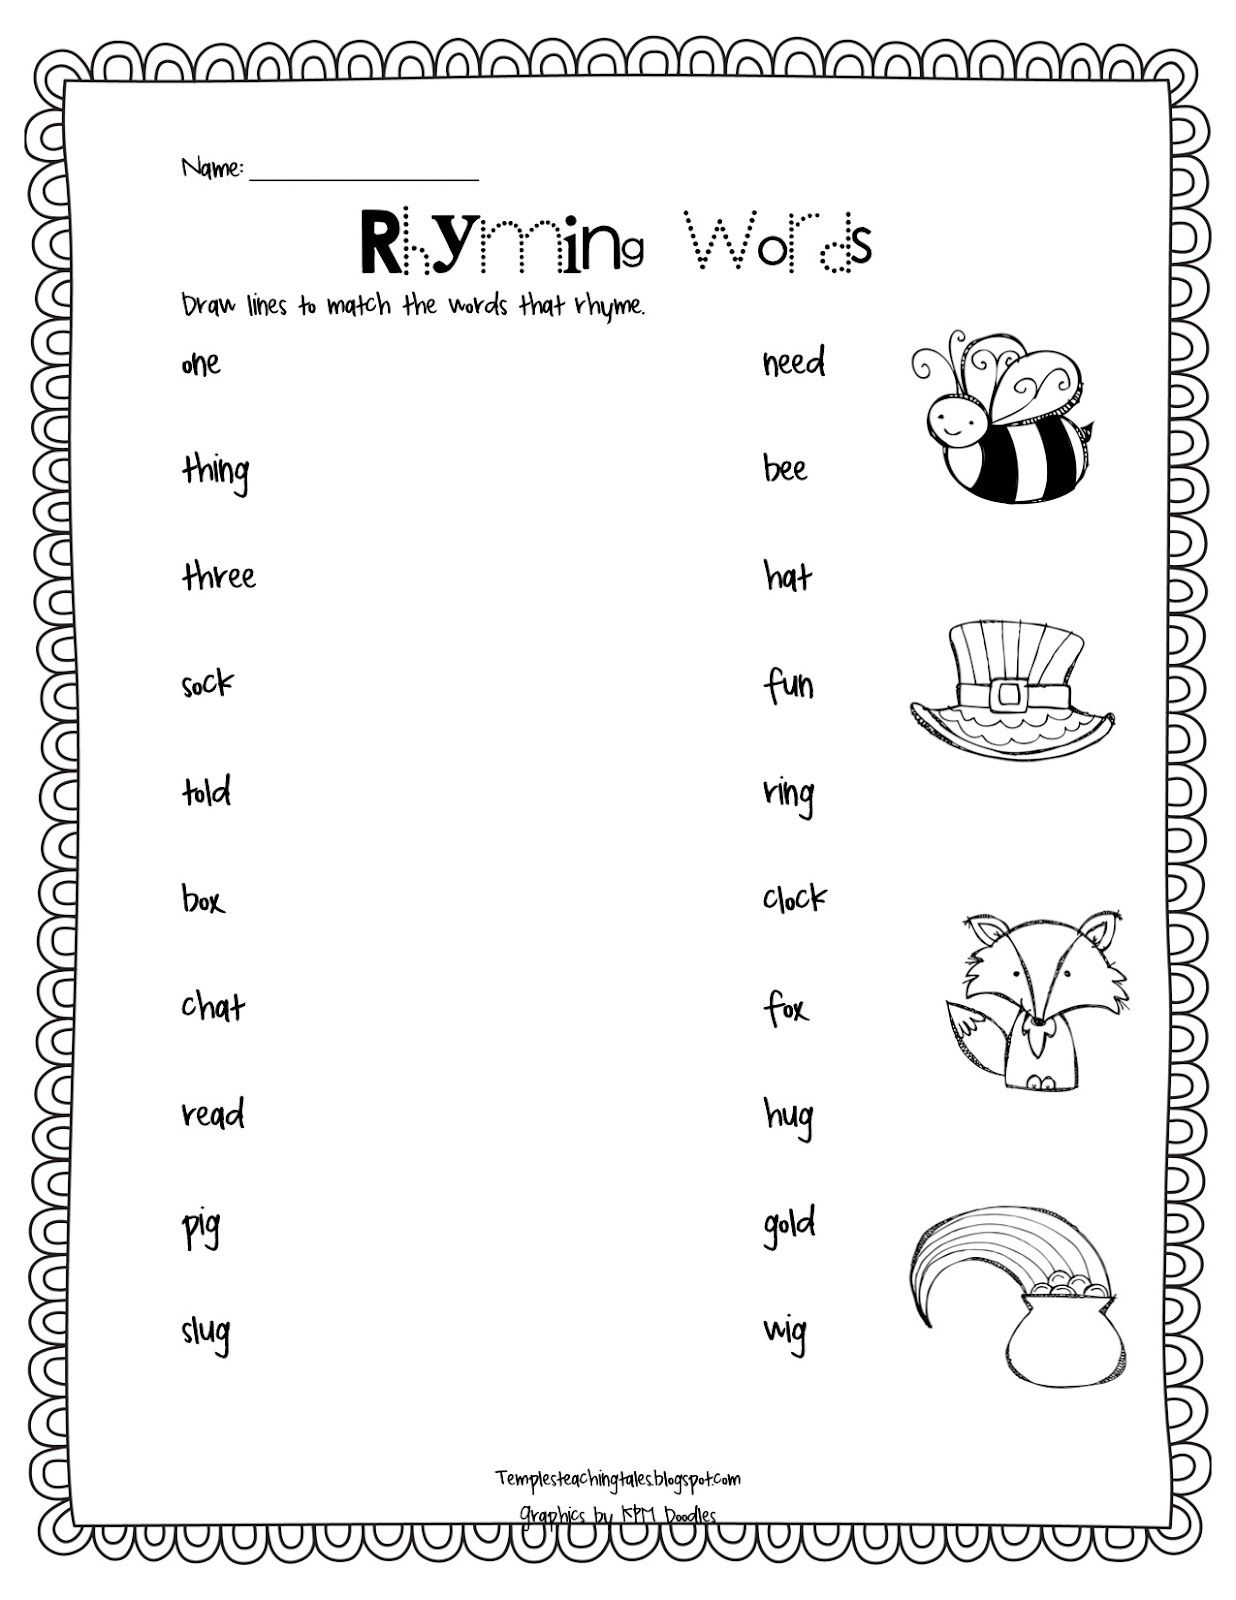 Rhyming Words Worksheets For Kindergarten - Worksheets